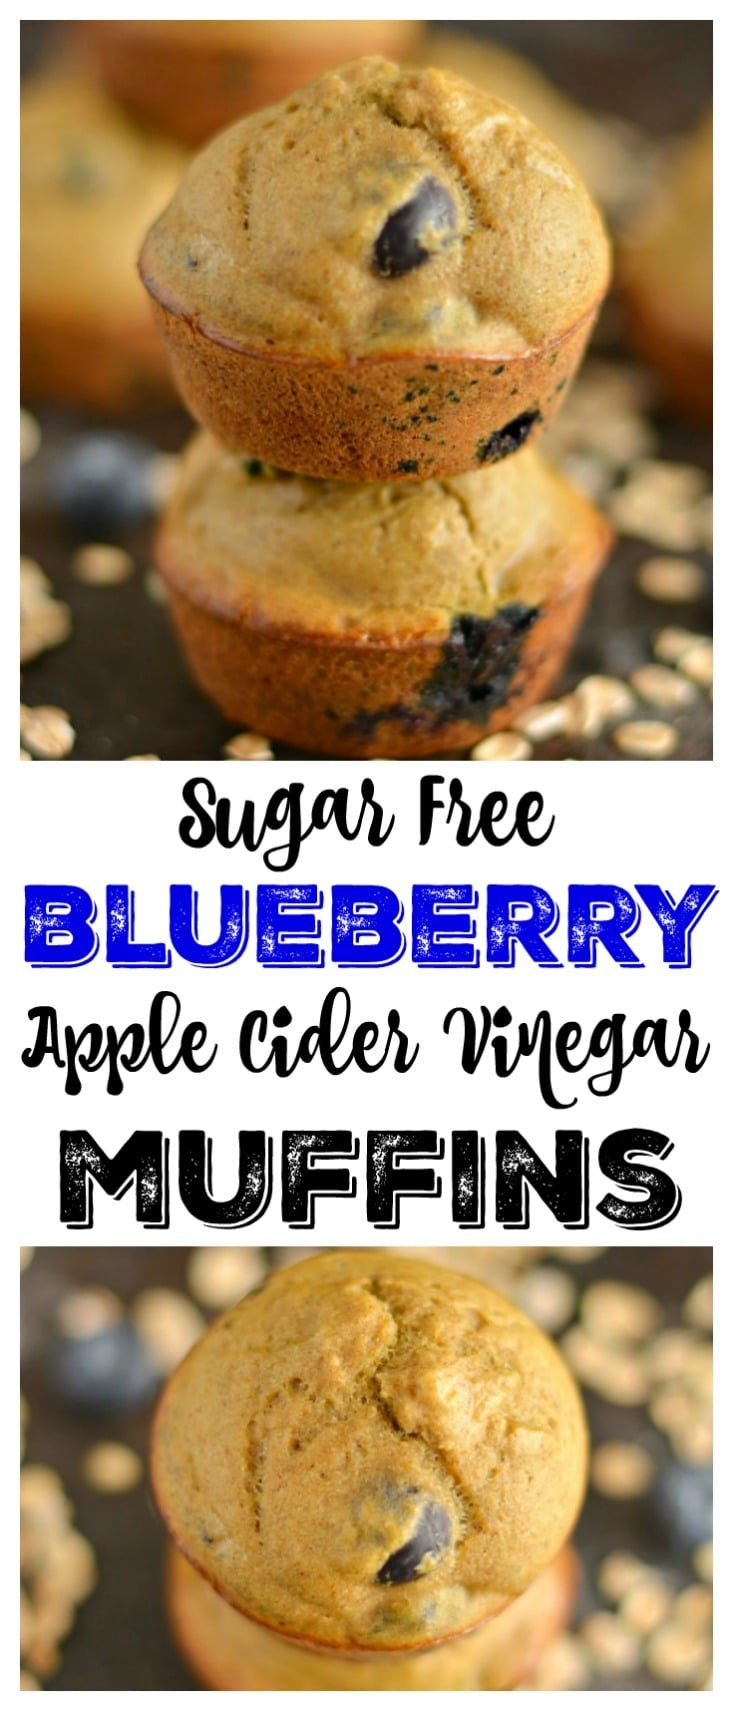 Sugar free Blueberry Apple Cider Vinegar Muffins made gluten free with just 6-ingredients. A hearty yet, soft & moist low caloriebreakfast or snack! Gluten Free + Low Calorie